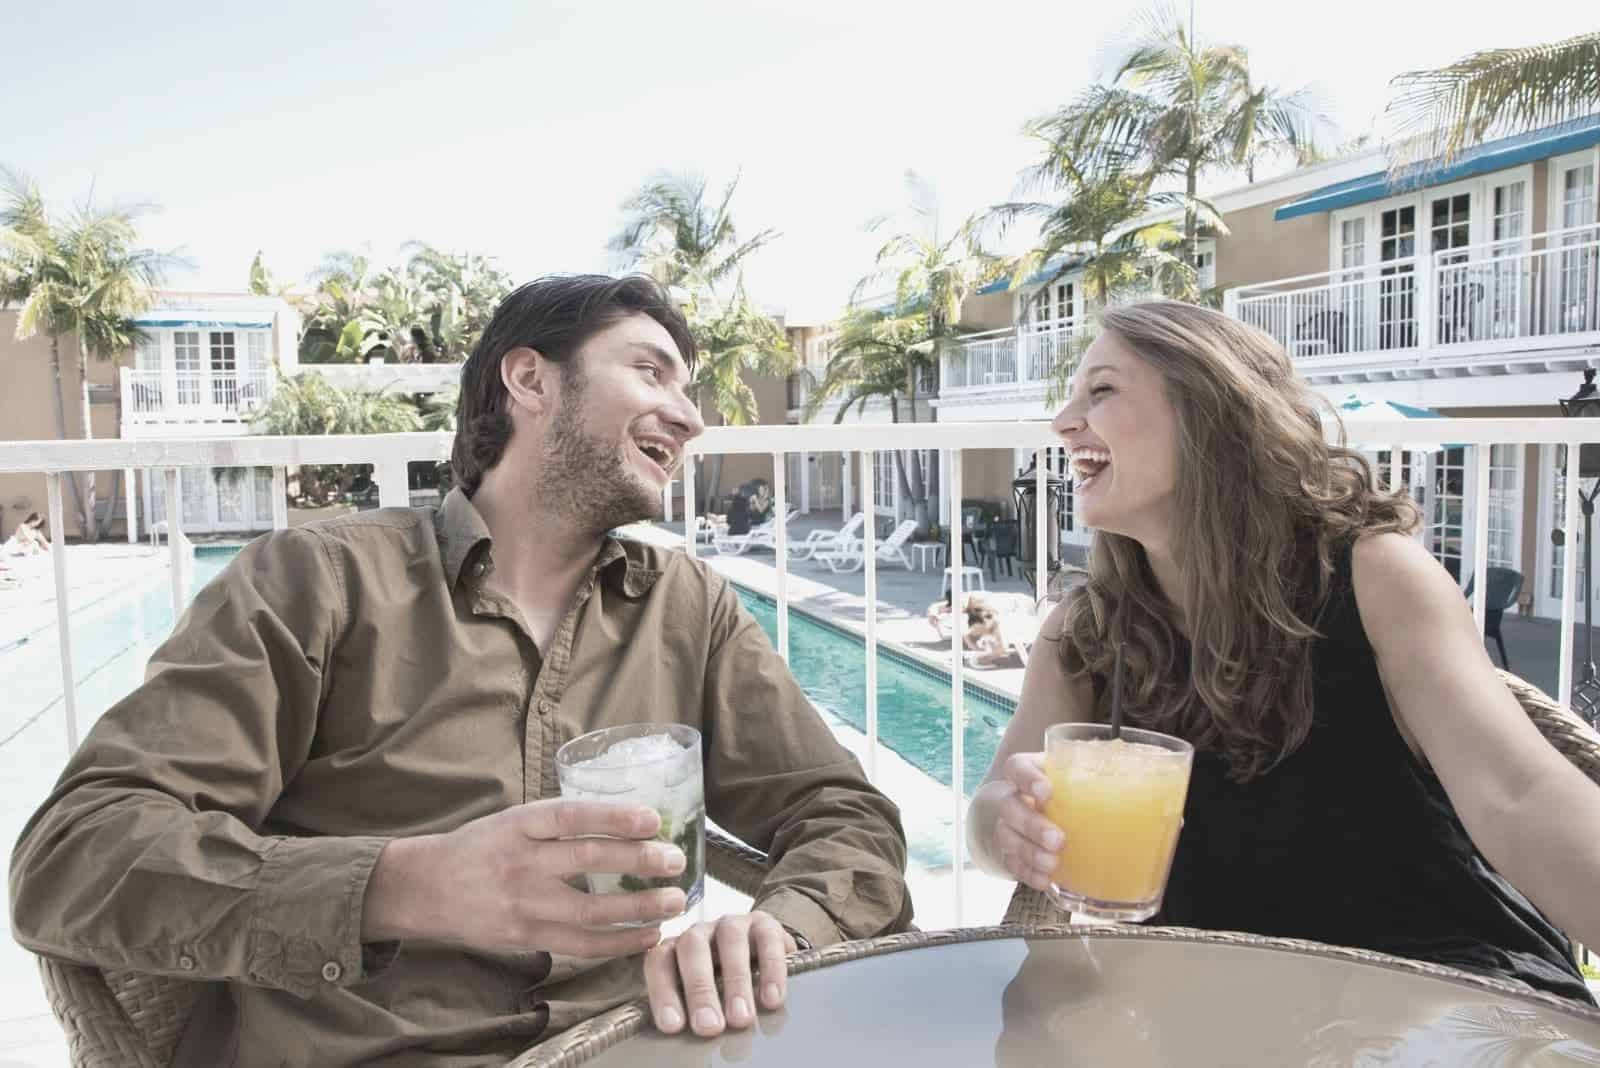 cheerful couple laughing while having a drinks and sitting by the table in a porch near a swimming pool